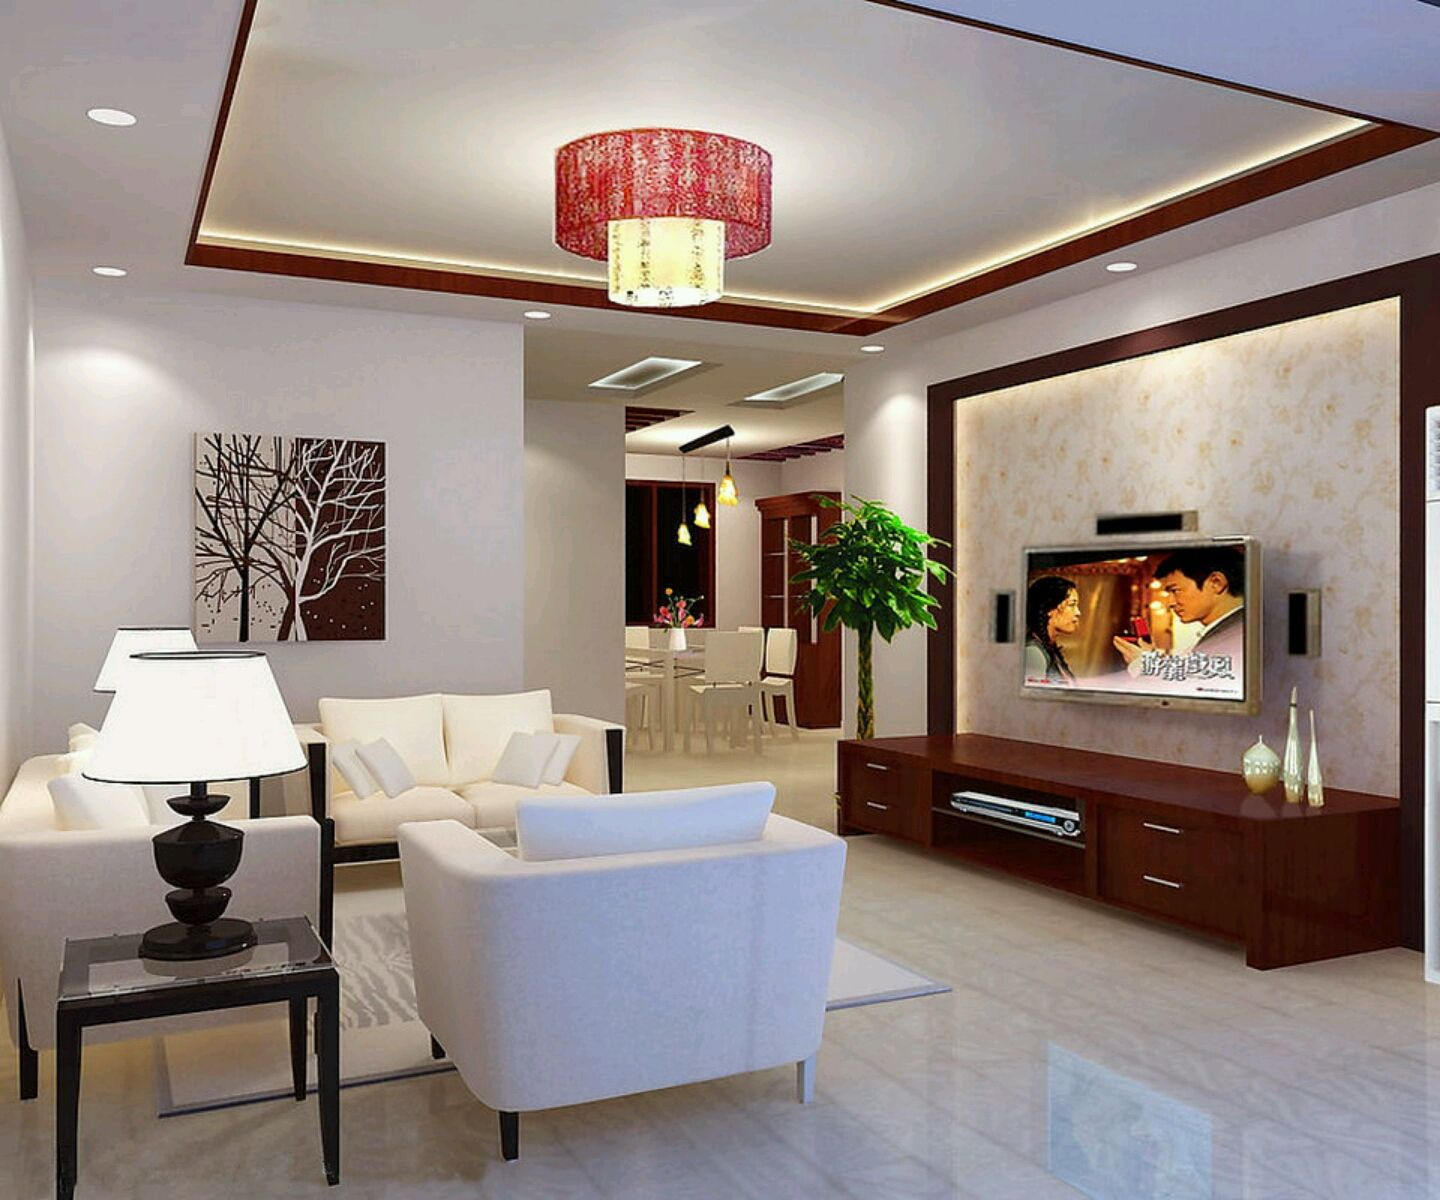 Ceiling Design Ideas 3 share 20 Inspiring Ceiling Design Ideas For Your Next Home Makeover